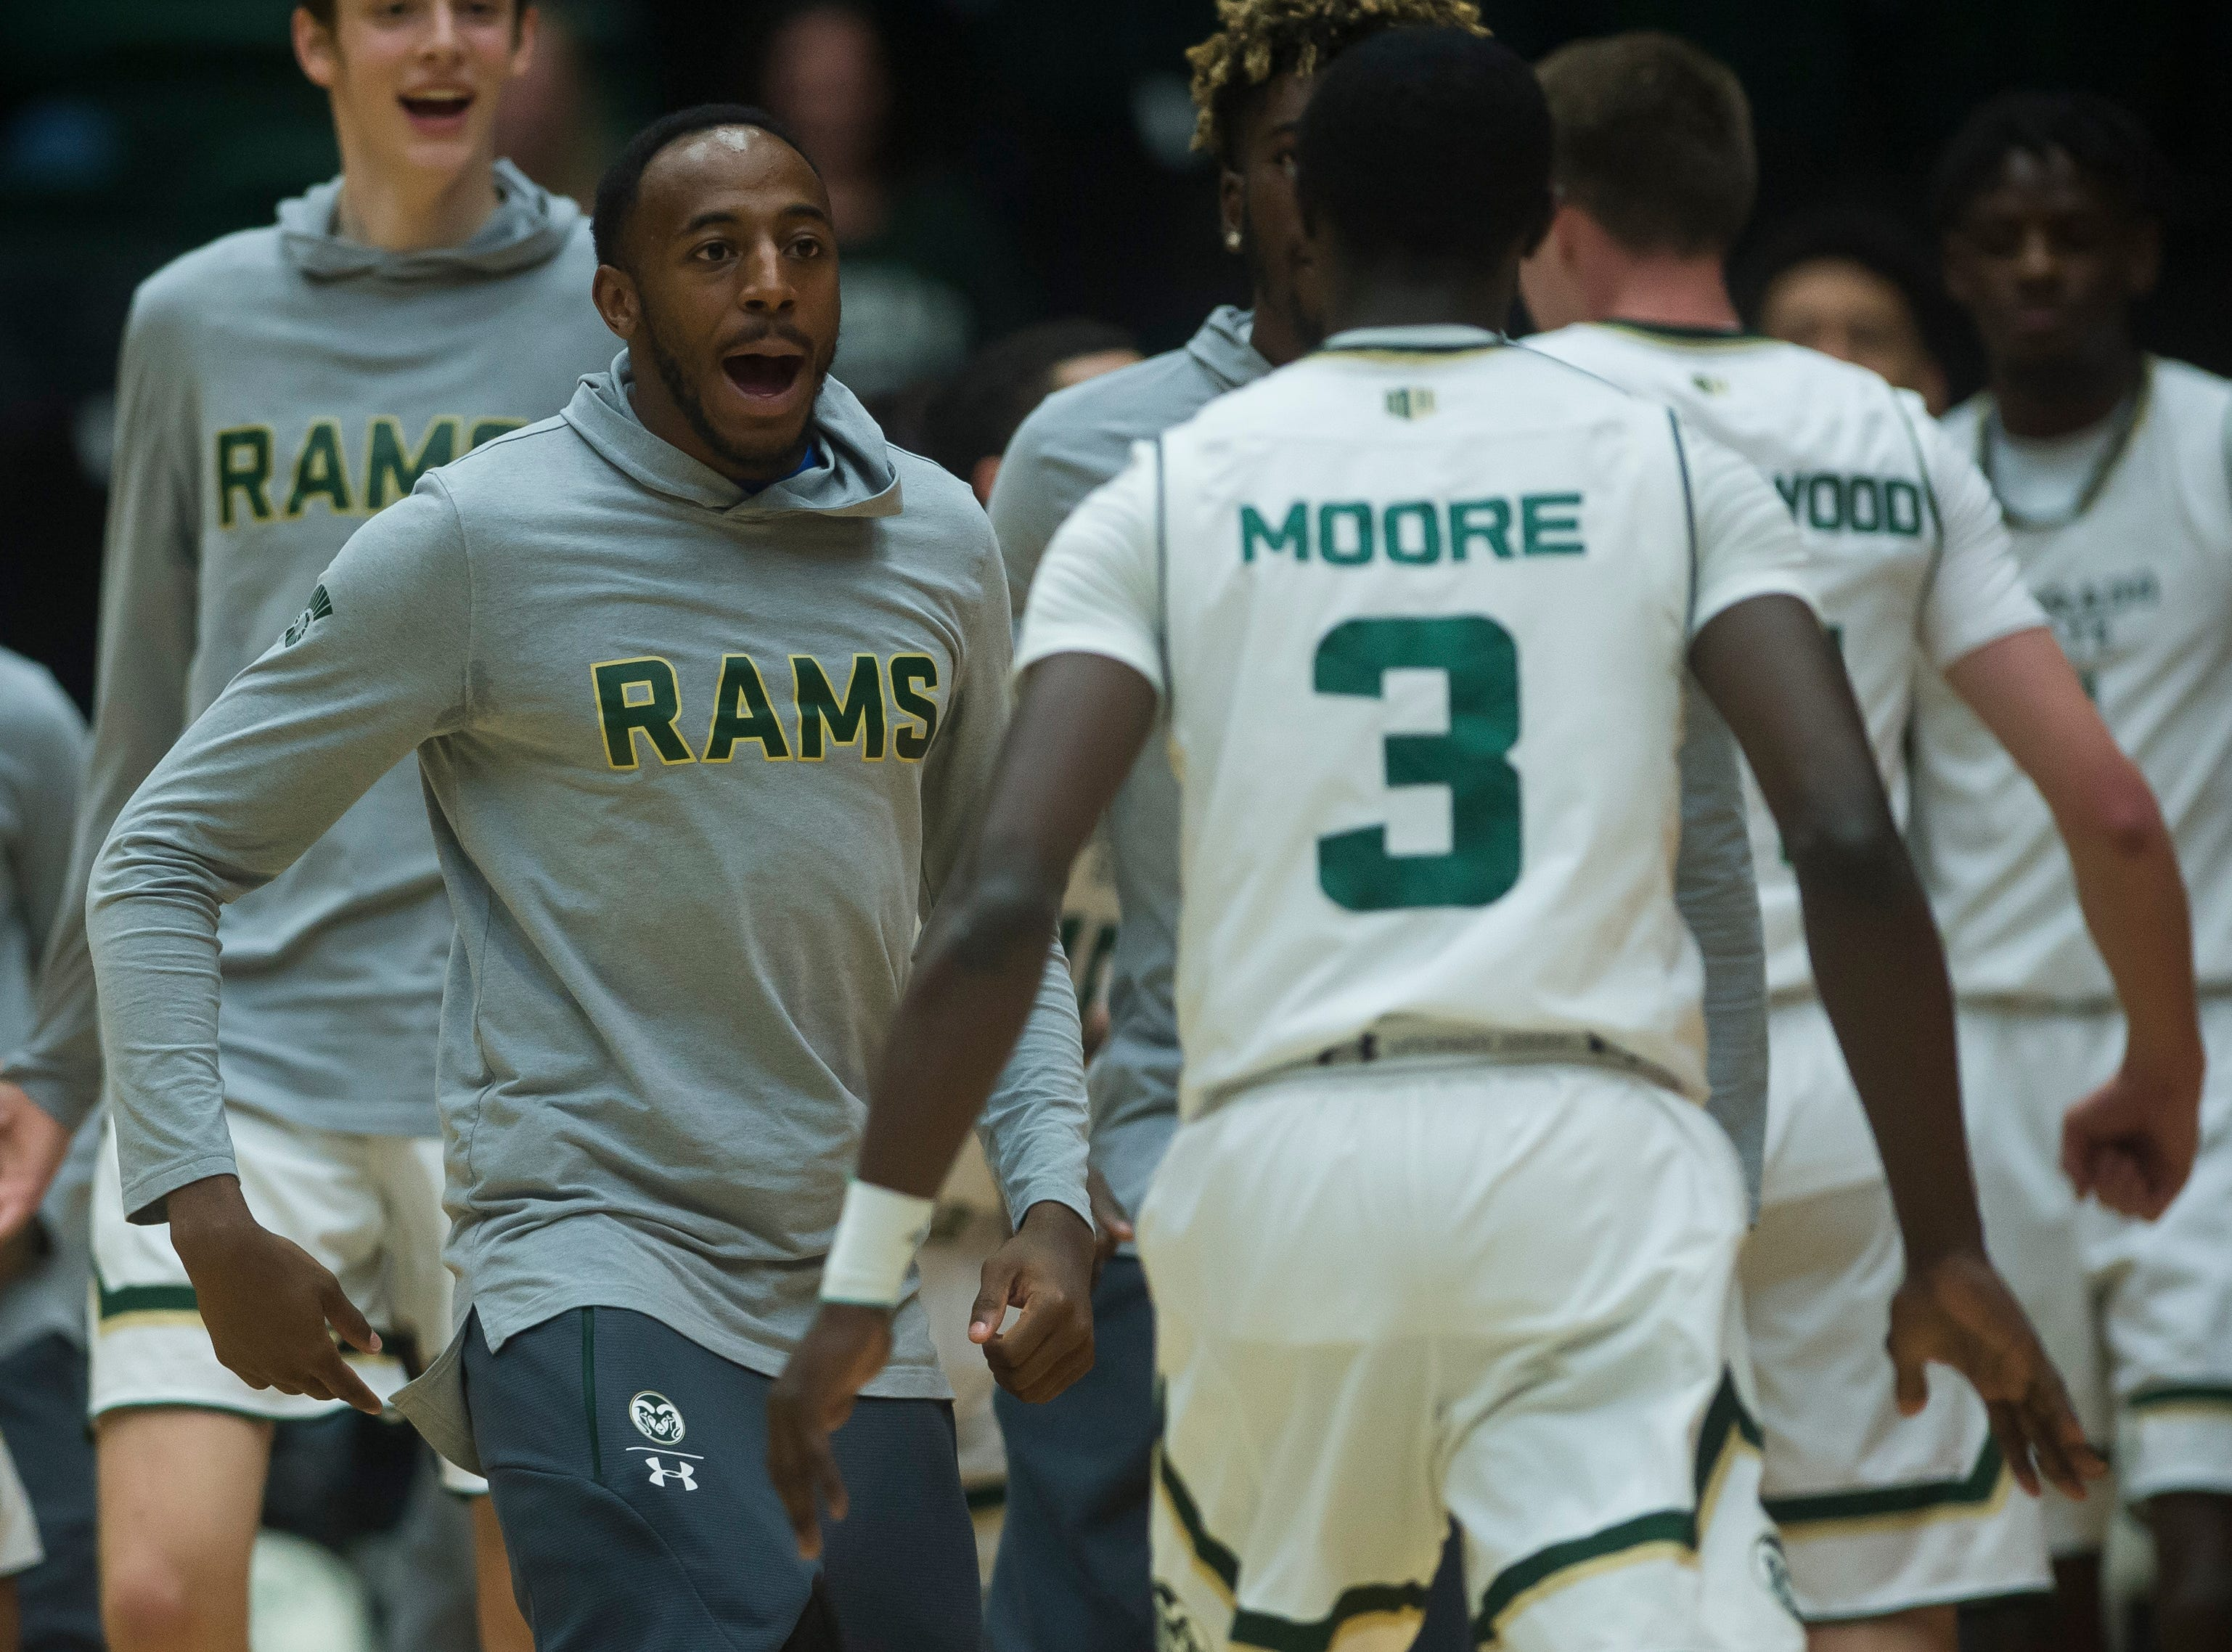 Colorado State University senior guard J.D. Paige greets freshman guard Kendle Moore (3) during a timeout in a game against Colorado Christian University on Wednesday, Nov. 7, 2018, at Moby Arena in Fort Collins, Colo.